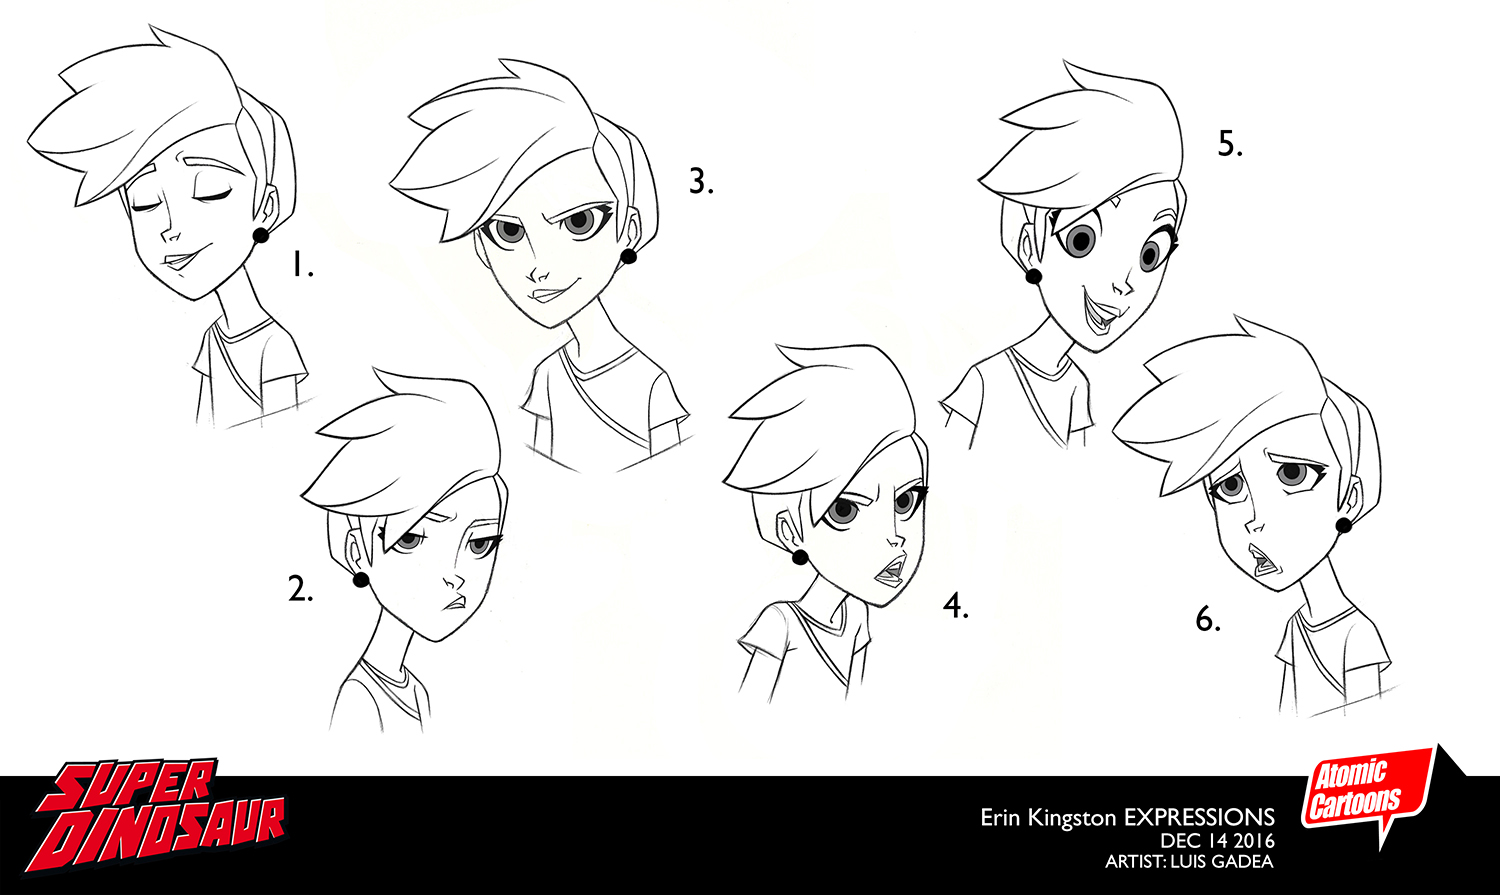 ErinKingston_Expressions_001_low_LG.jpg